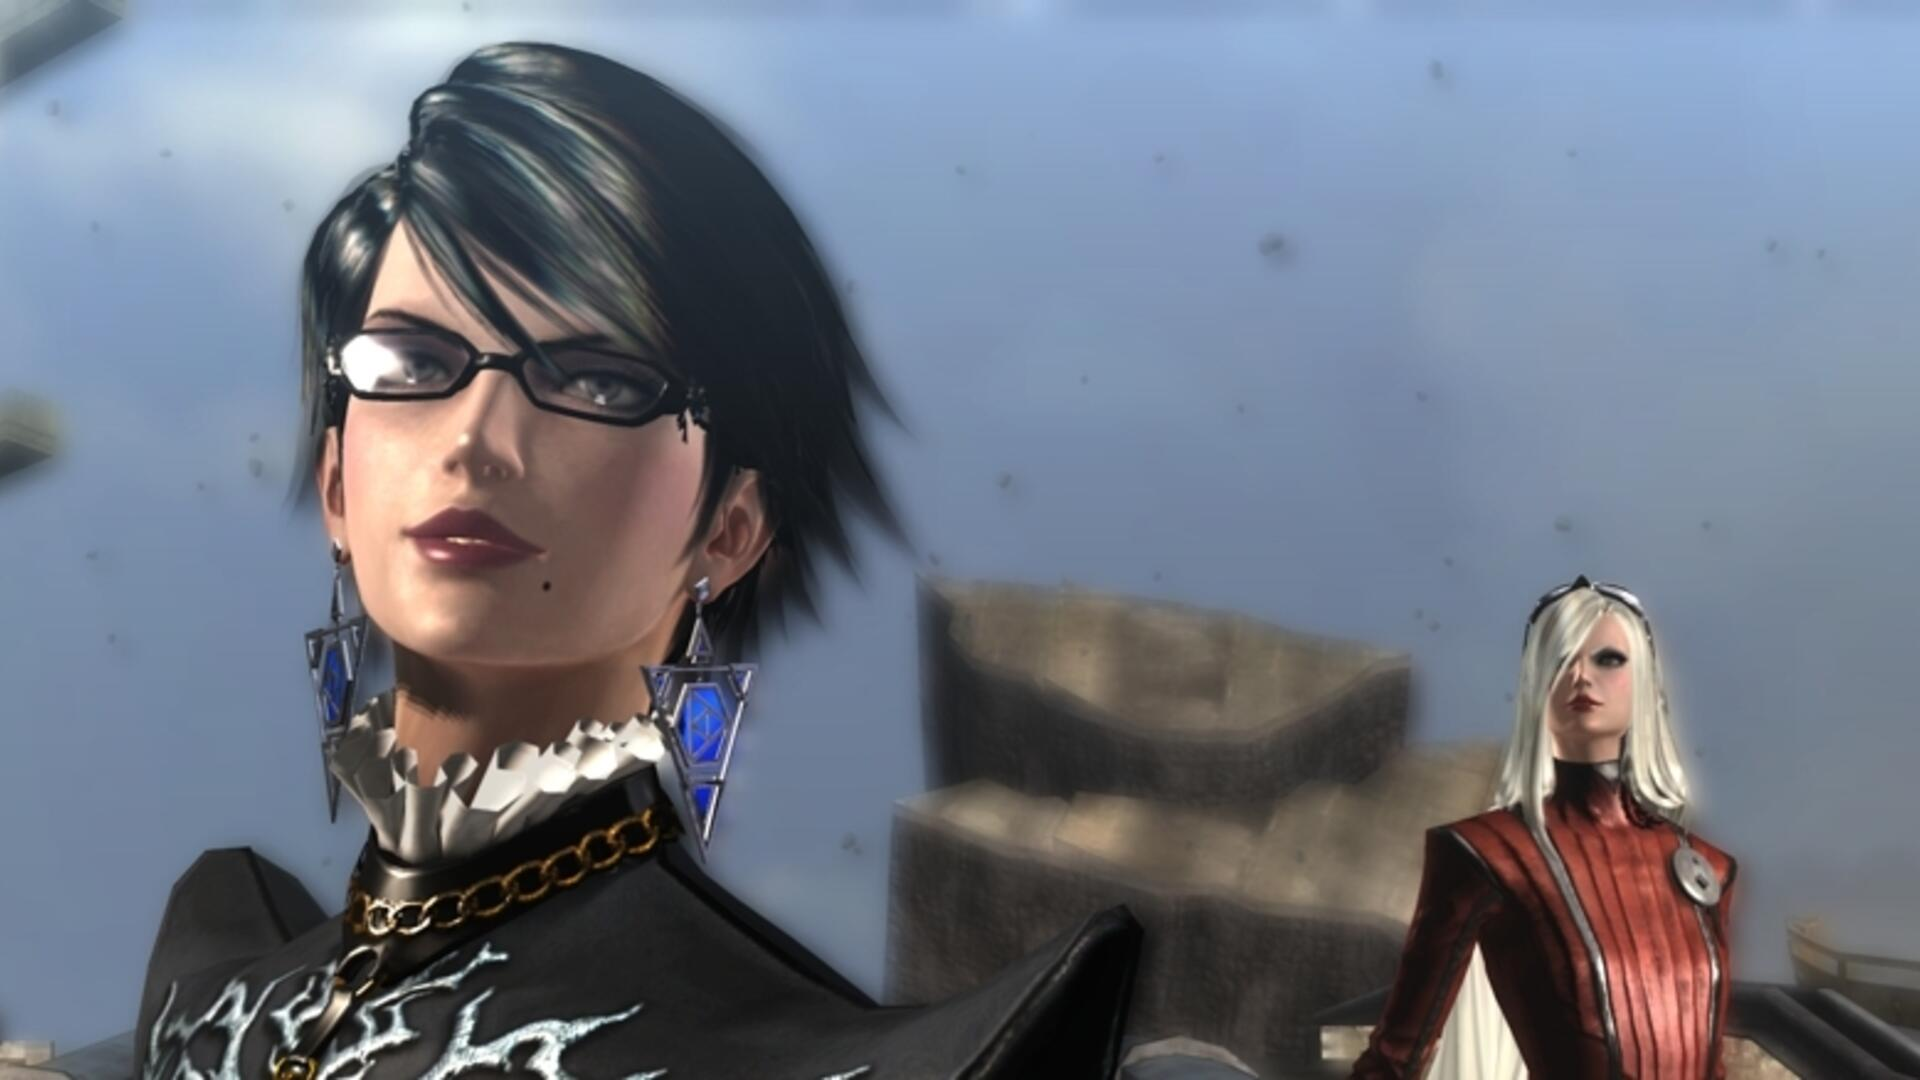 EGX: Bayonetta 2 is More of the Same, and That's Great